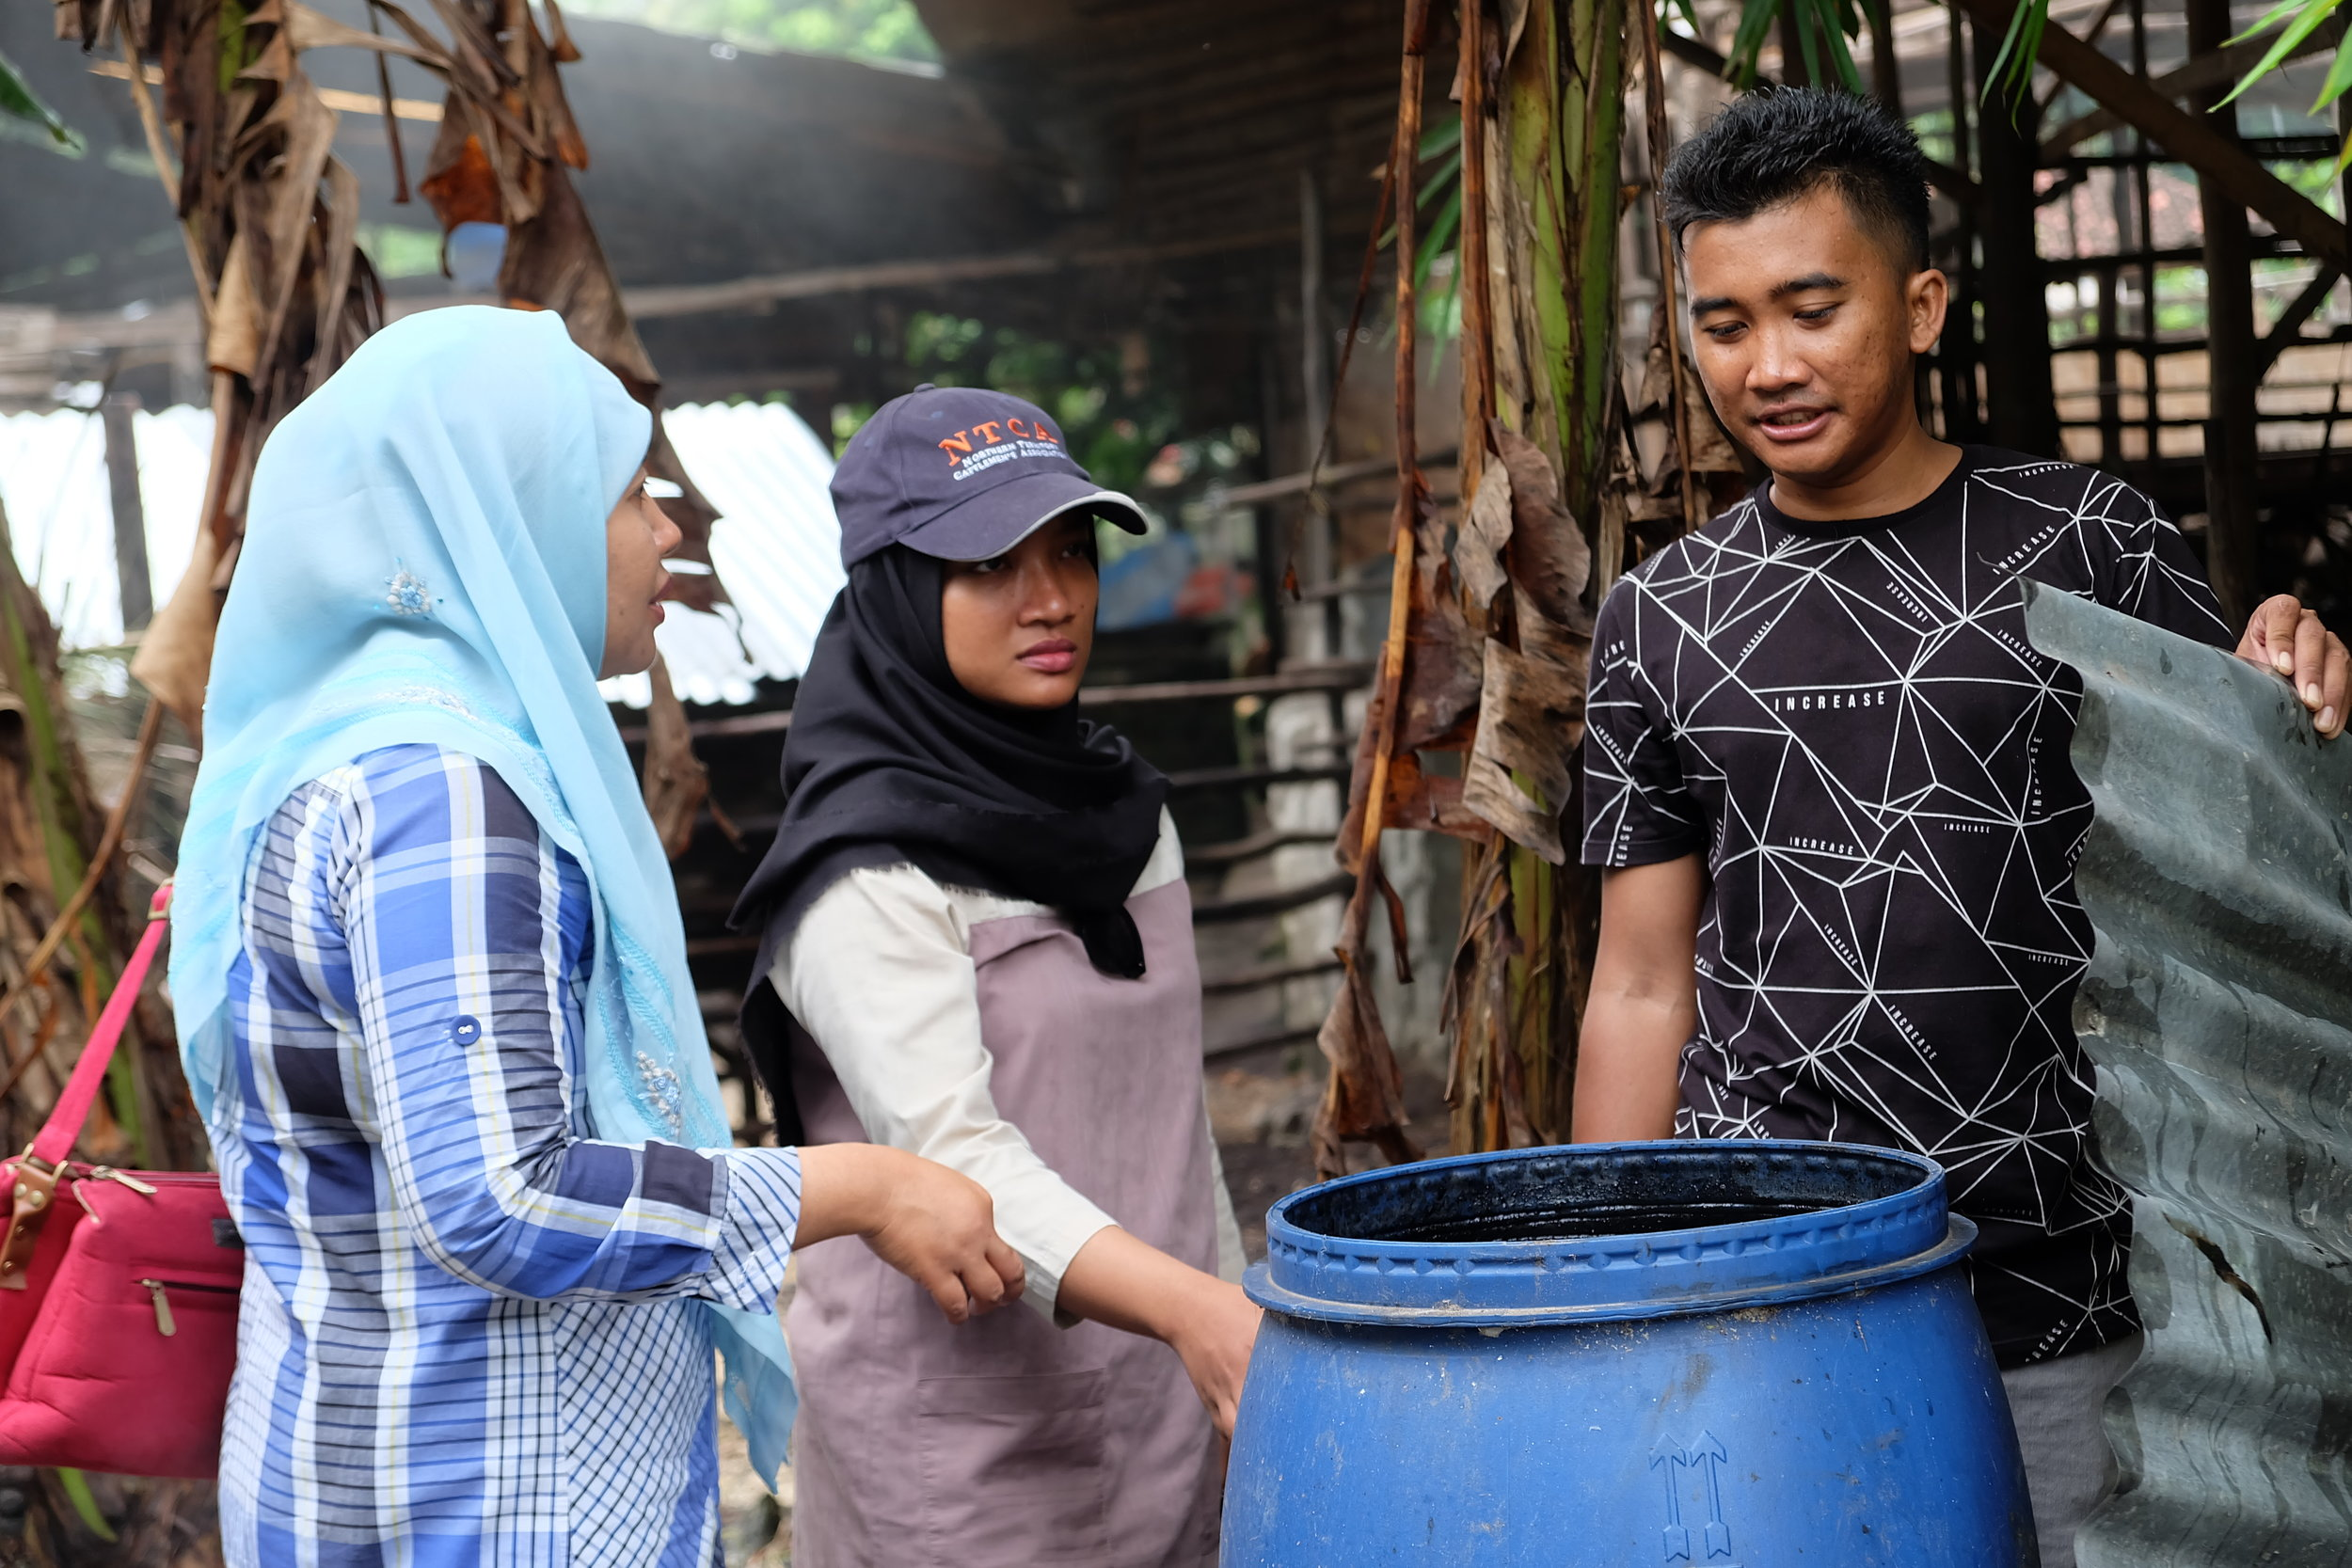 Dr Yenny Nur Angraenny and Febrina Prameswari discuss a liquid smoke trial to protect plants and animals against insects with group leader Pak Suwandi.